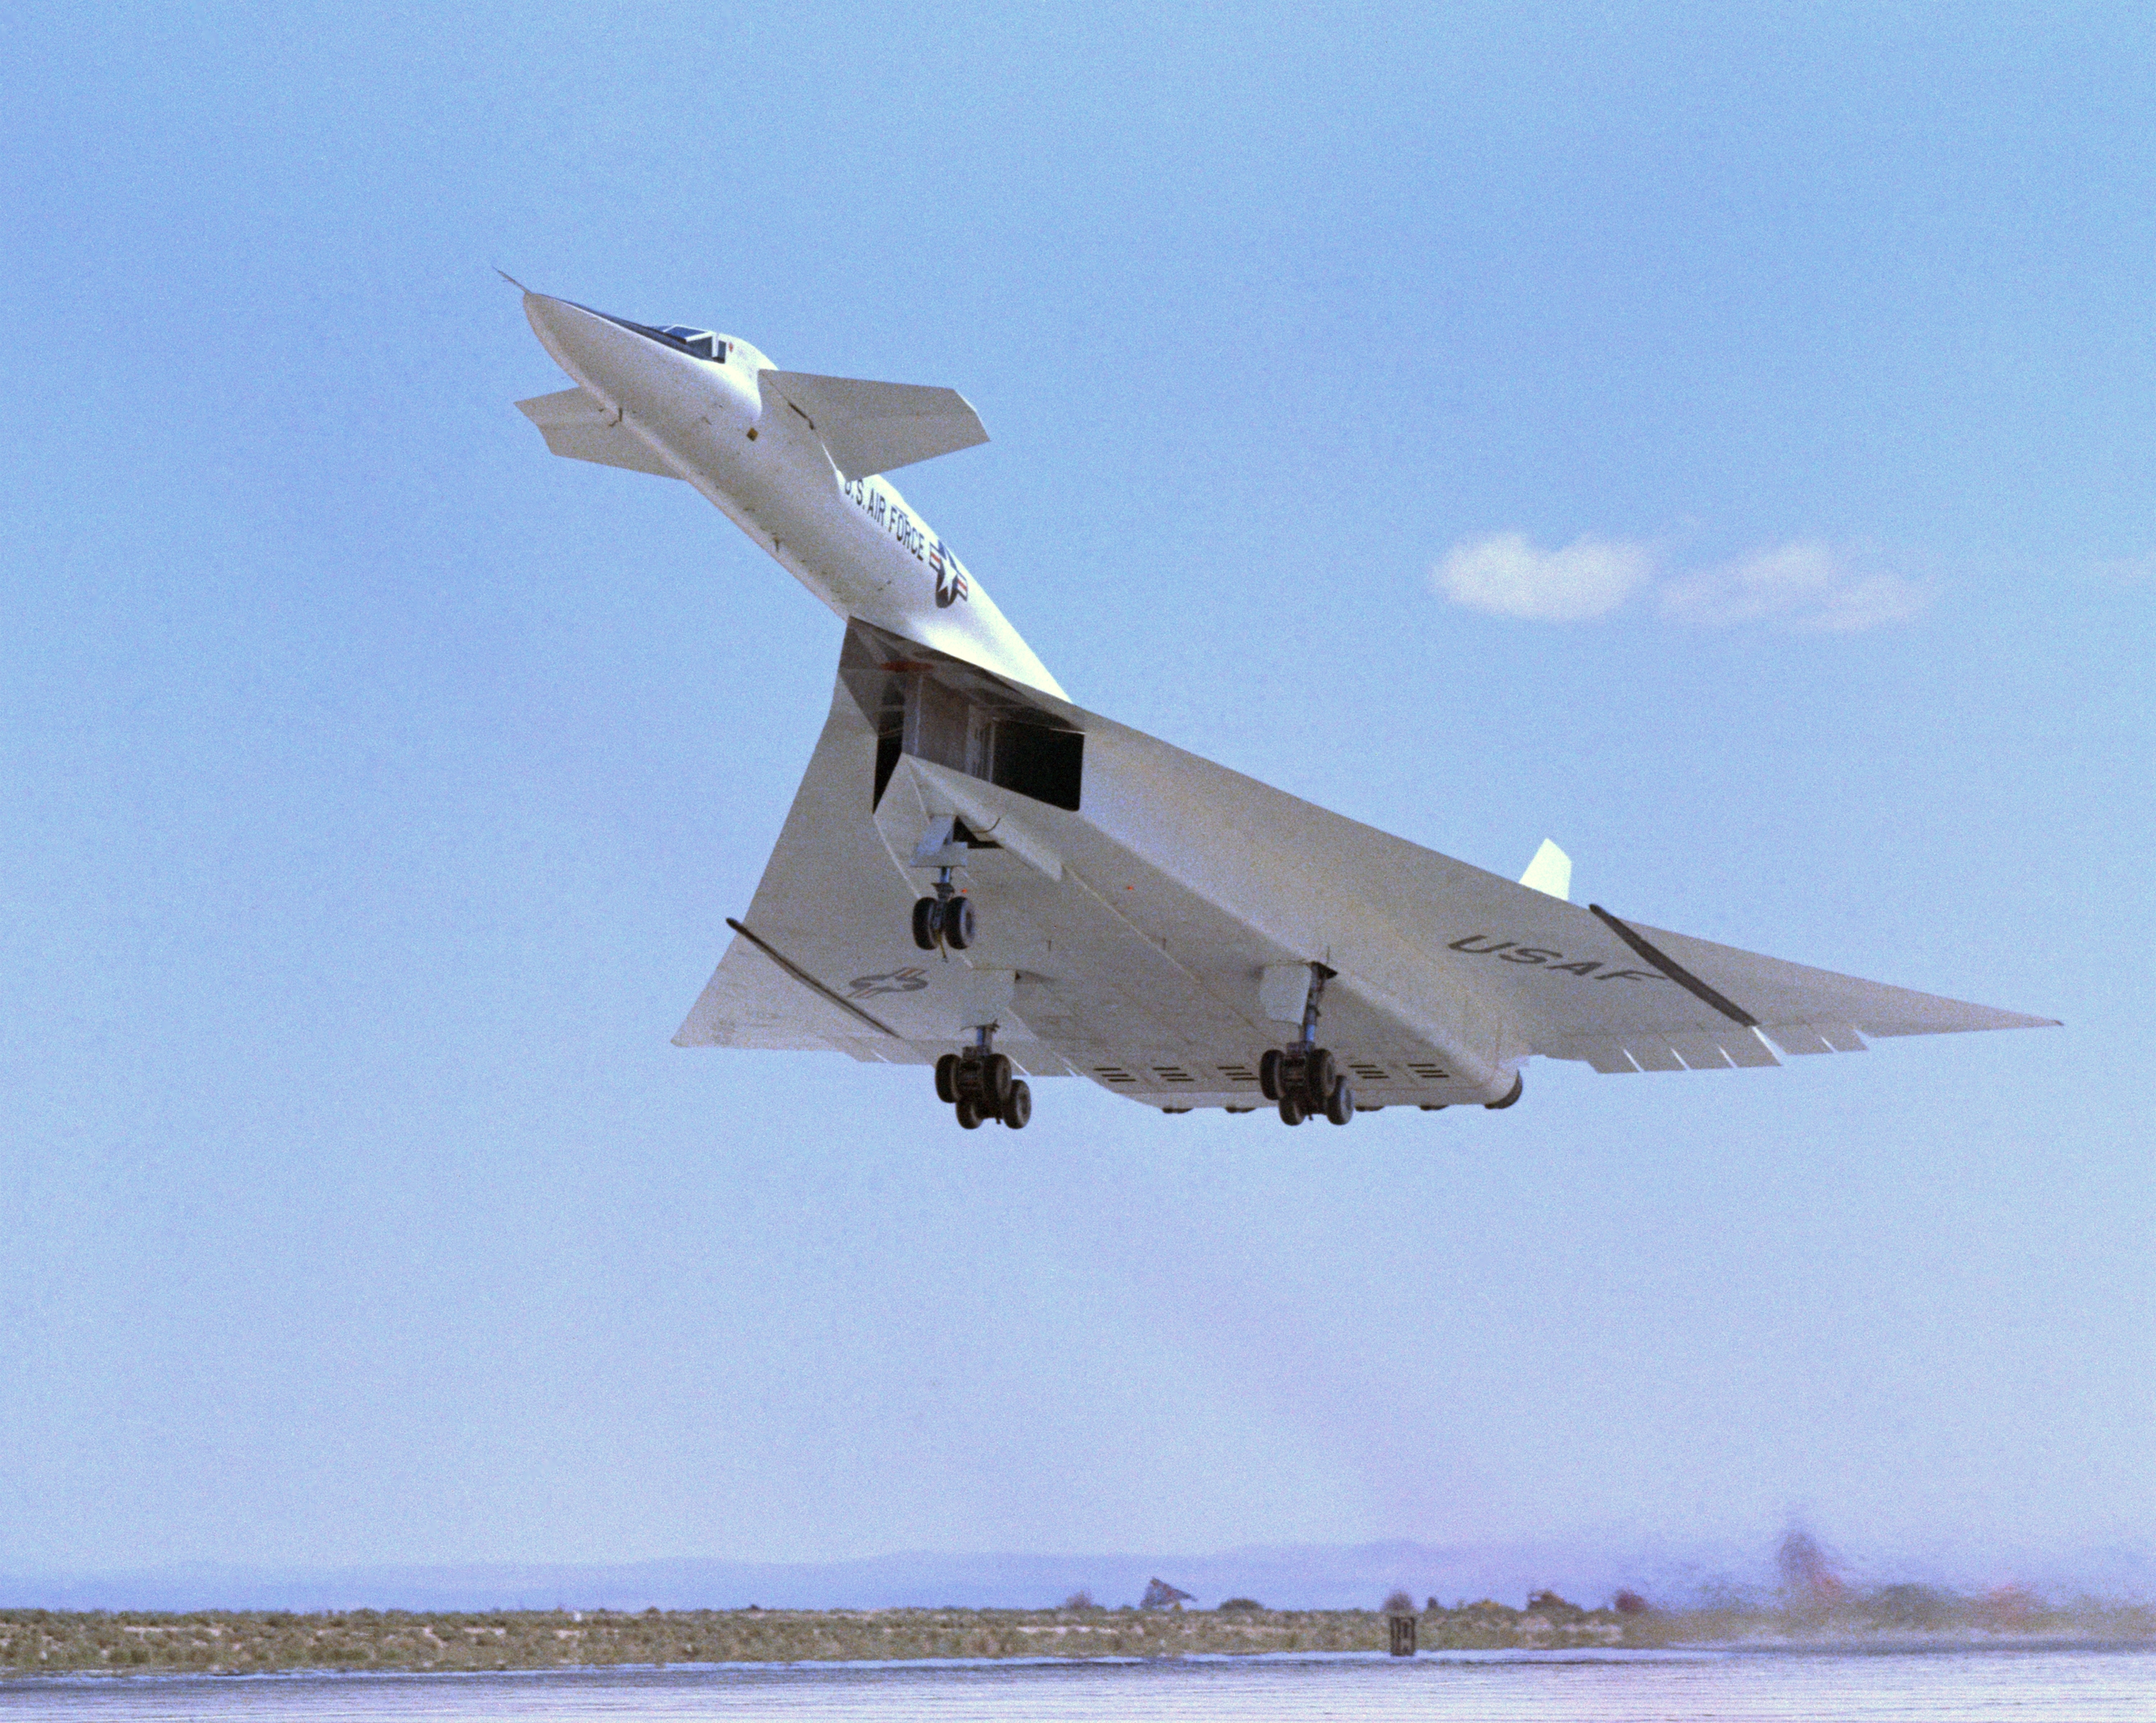 http://upload.wikimedia.org/wikipedia/commons/4/40/North_American_XB-70_above_runway_ECN-792.jpg